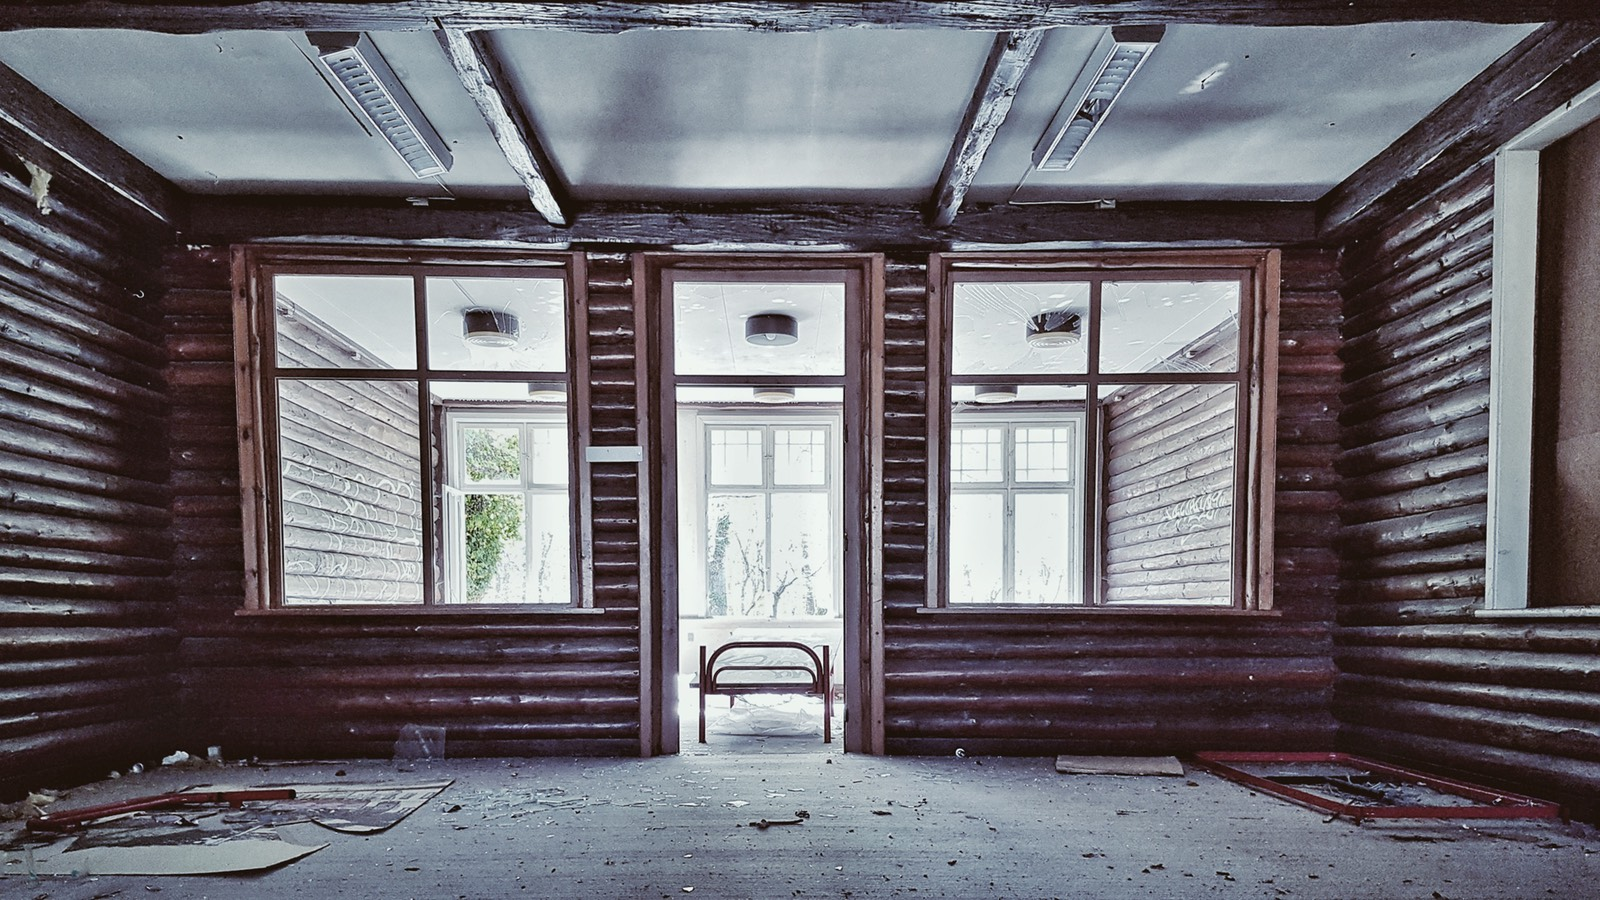 Het hotel | Urbex for tonight